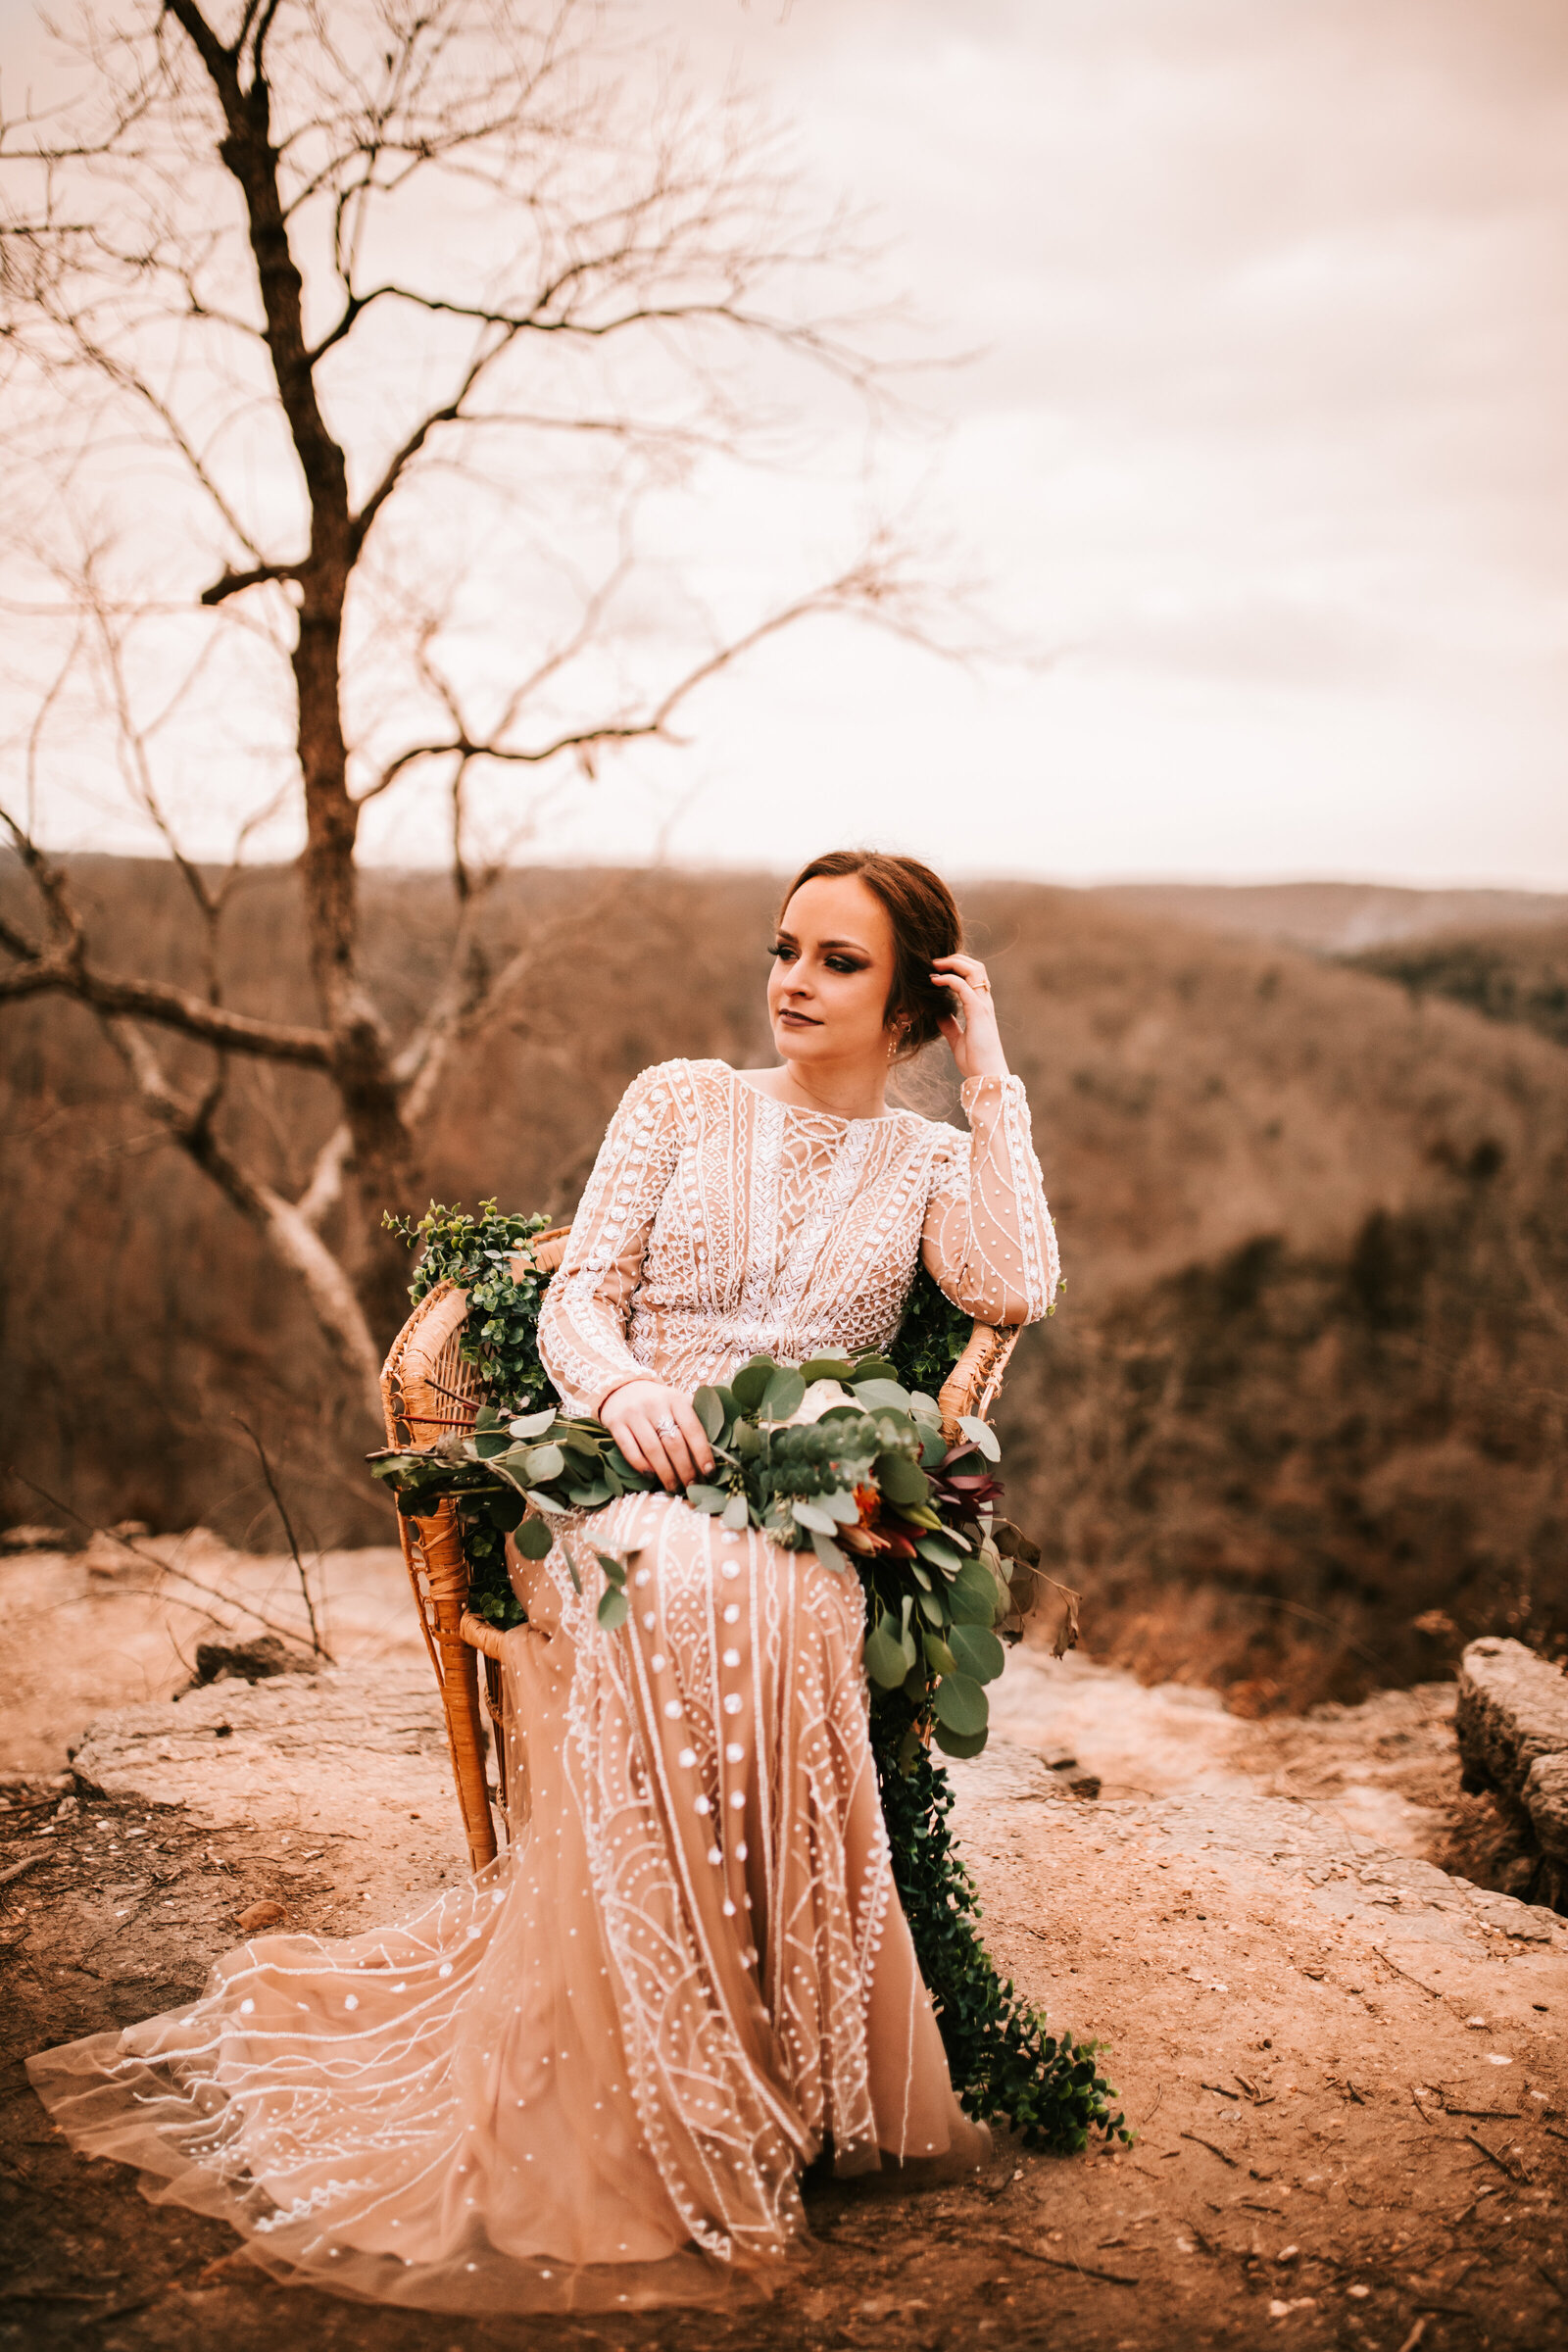 styled elopement with boho dress and greenery